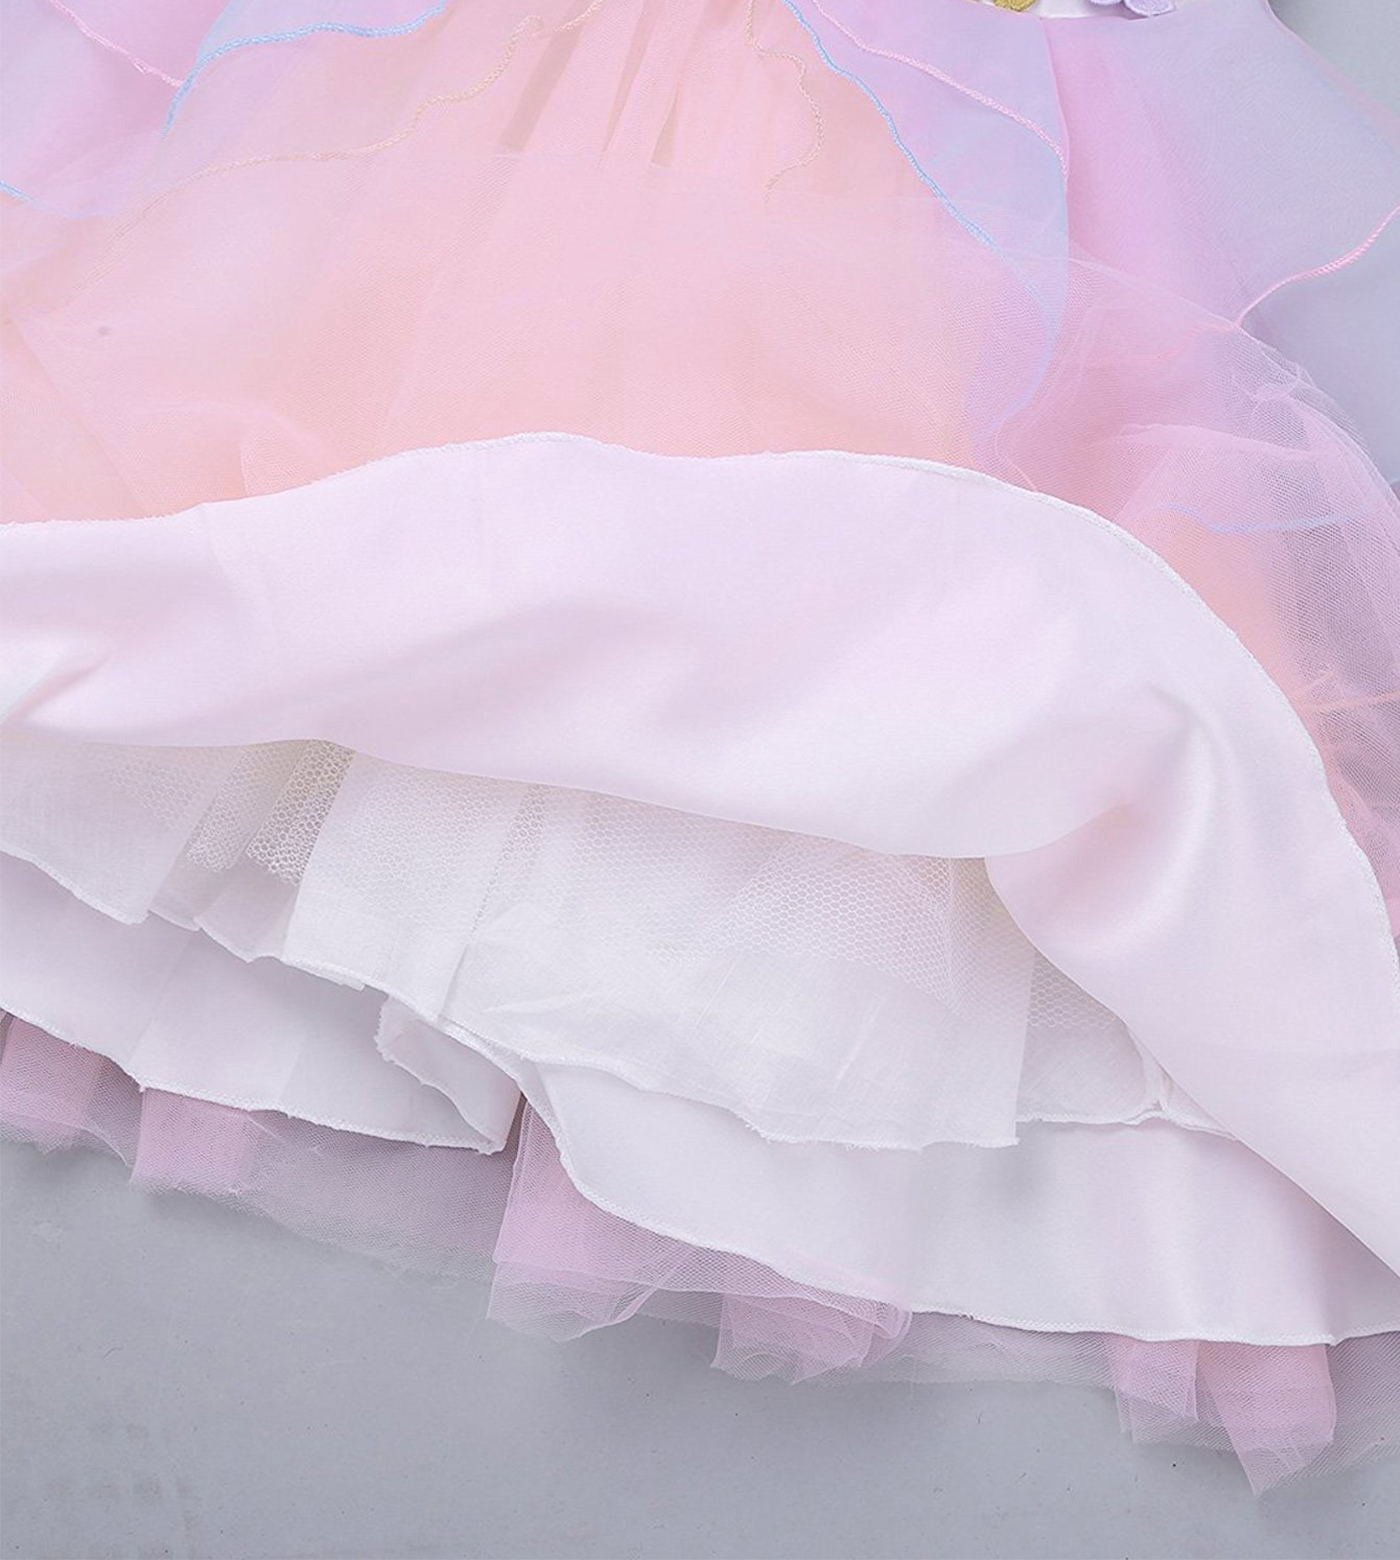 TTYAOVO Kids Unicorn Costume Dress Girl Princess Flower Pageant Party Tutu Dresses Size 5-6 Years Pink by TTYAOVO (Image #6)